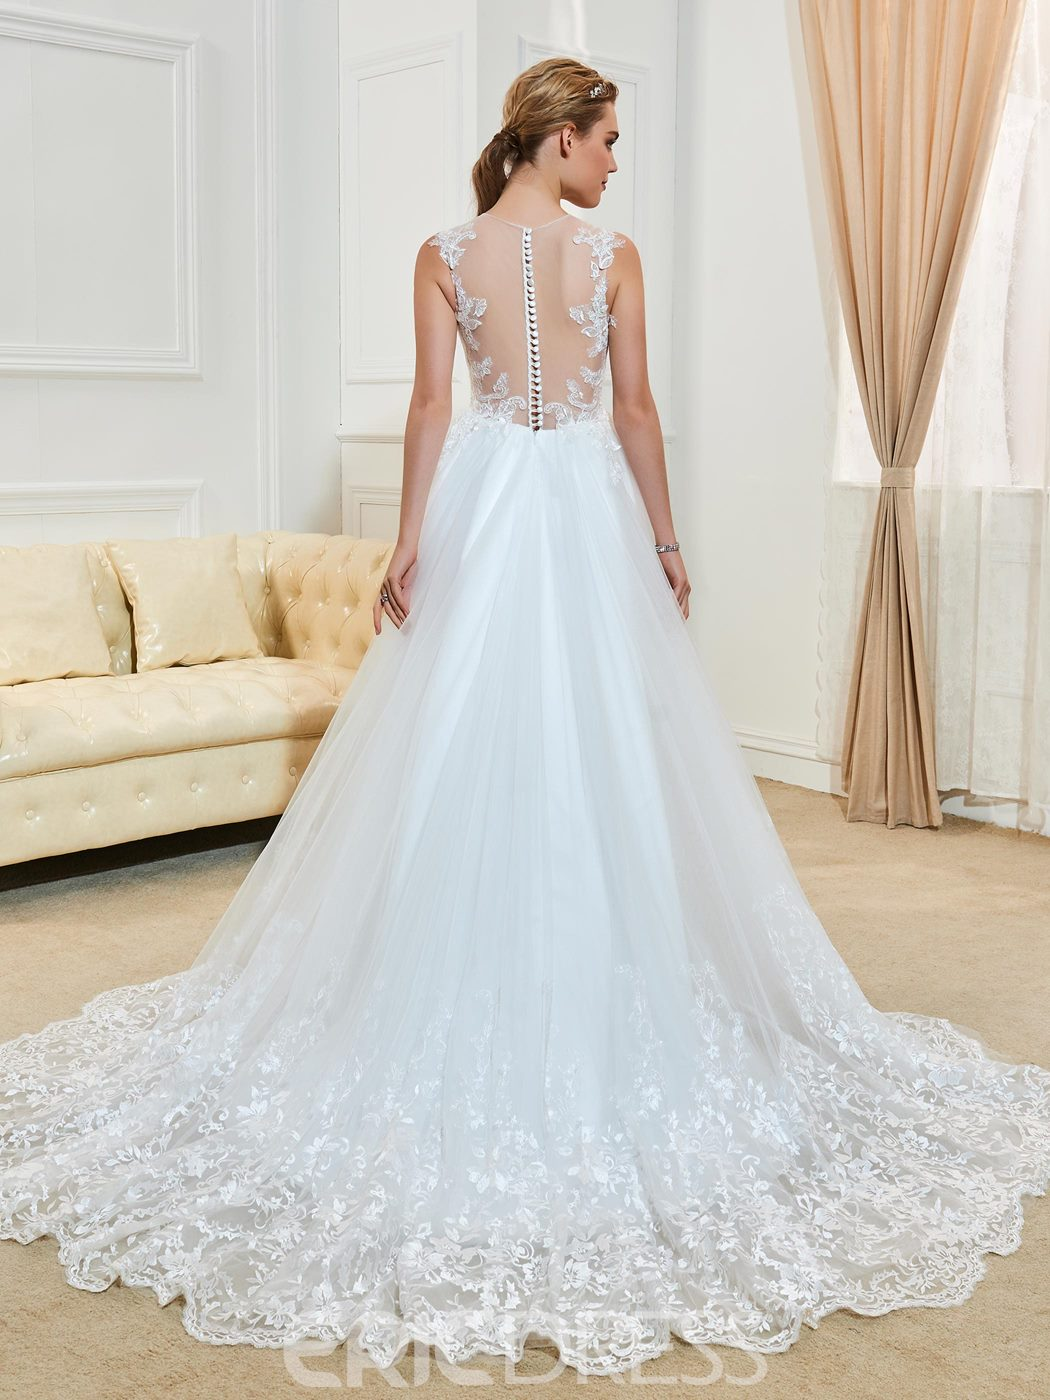 Charming Illusion Neckline Appliques A Line Asymmetry Wedding Dress